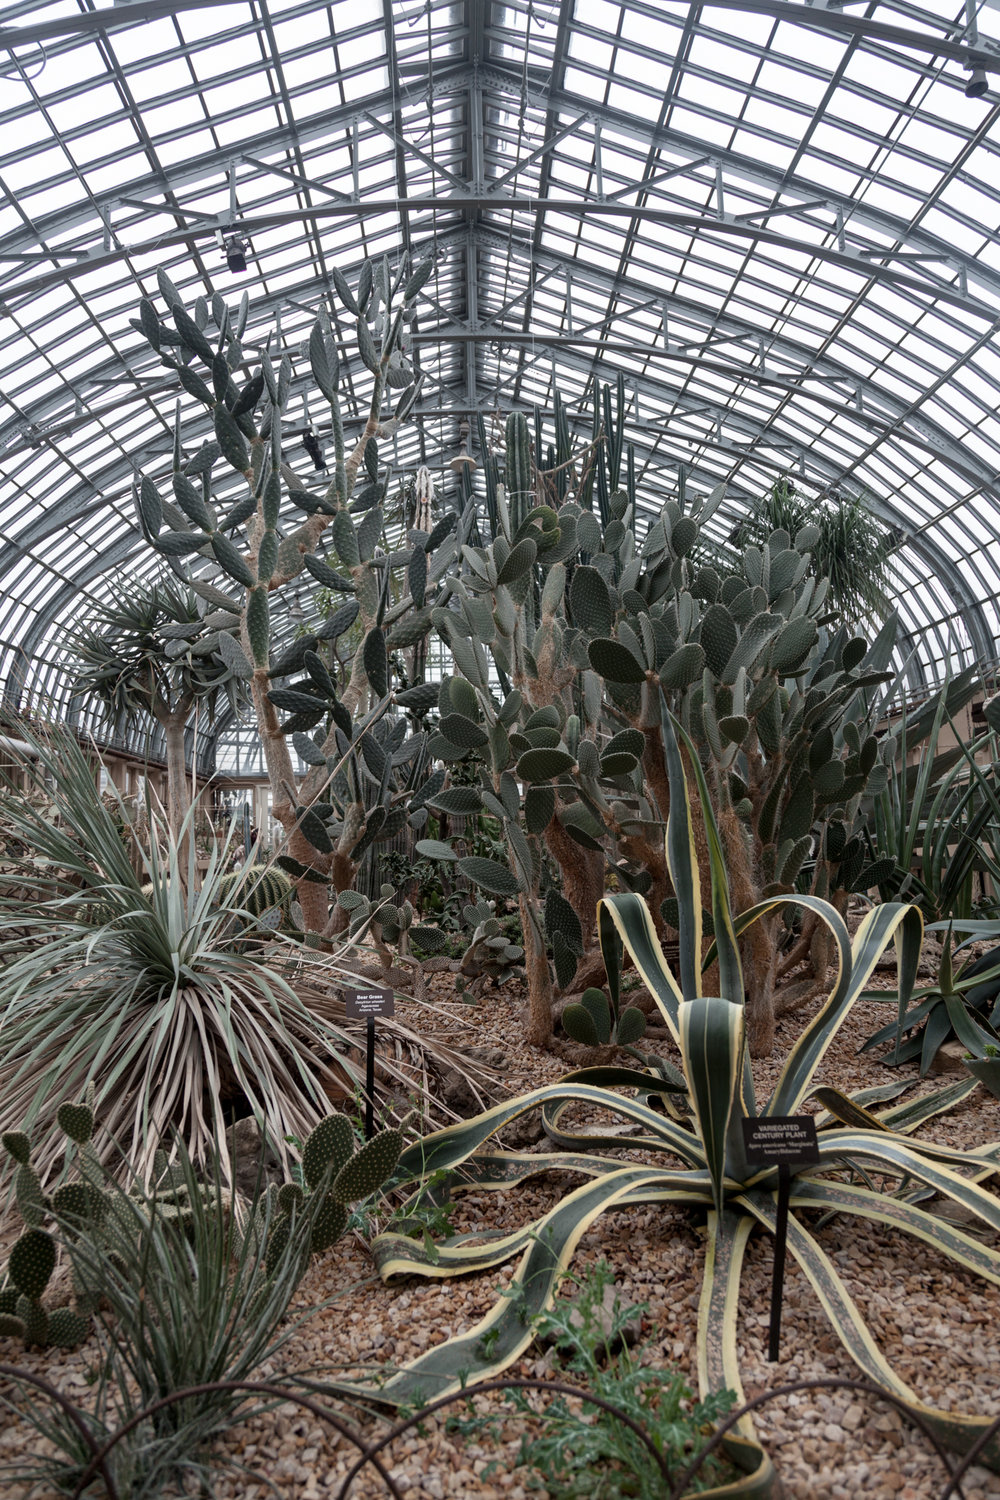 Cacti-Room-Garfield-Park-Conservatory-Homestead-brooklyn.jpg